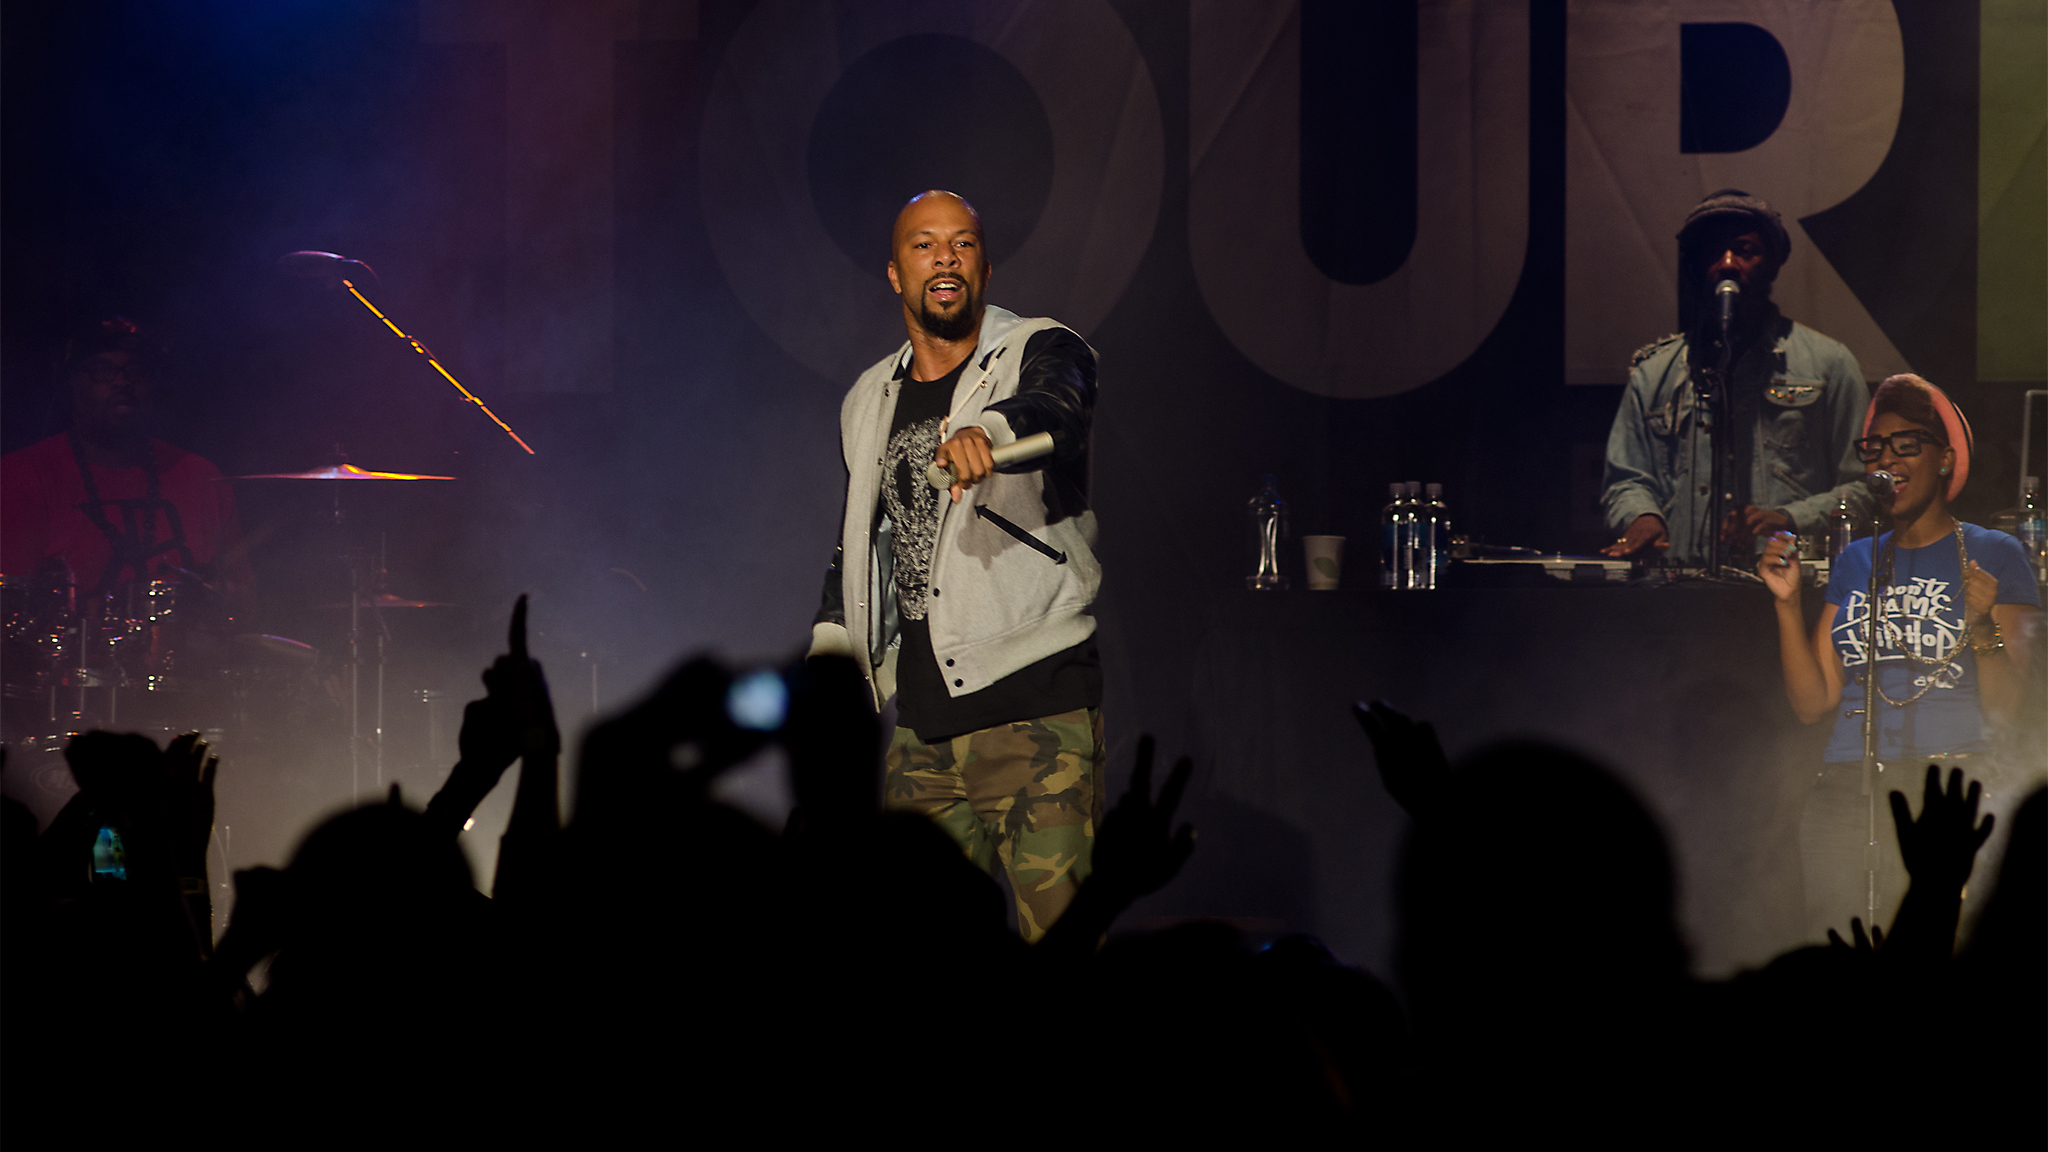 Hip-hop legend Common performed at the Dew Tour in San Francisco this weekend.